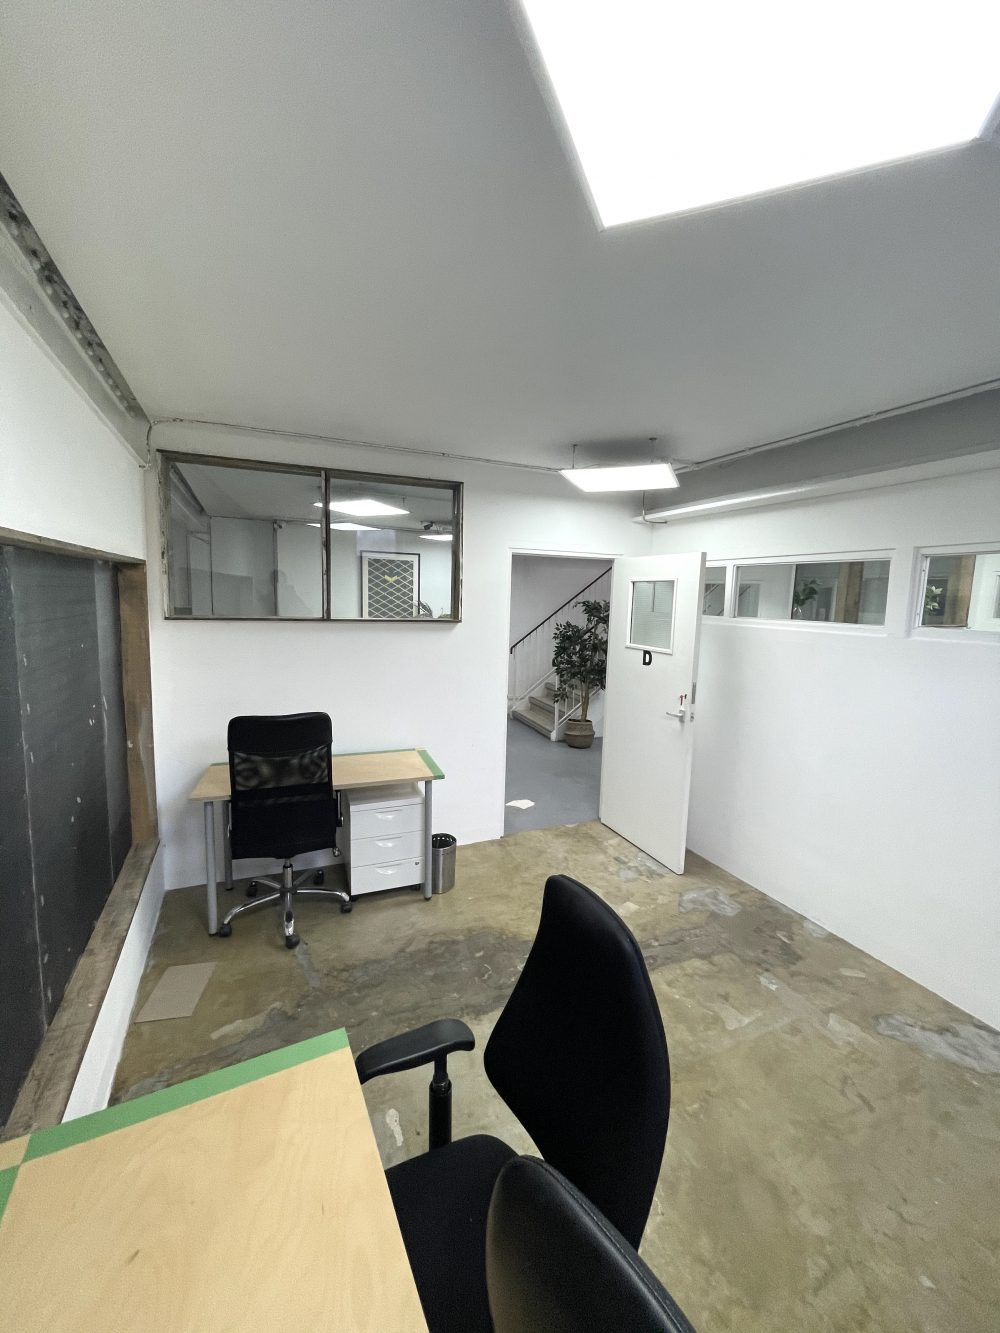 Studio Available to rent in N16 Green Lane Pic5